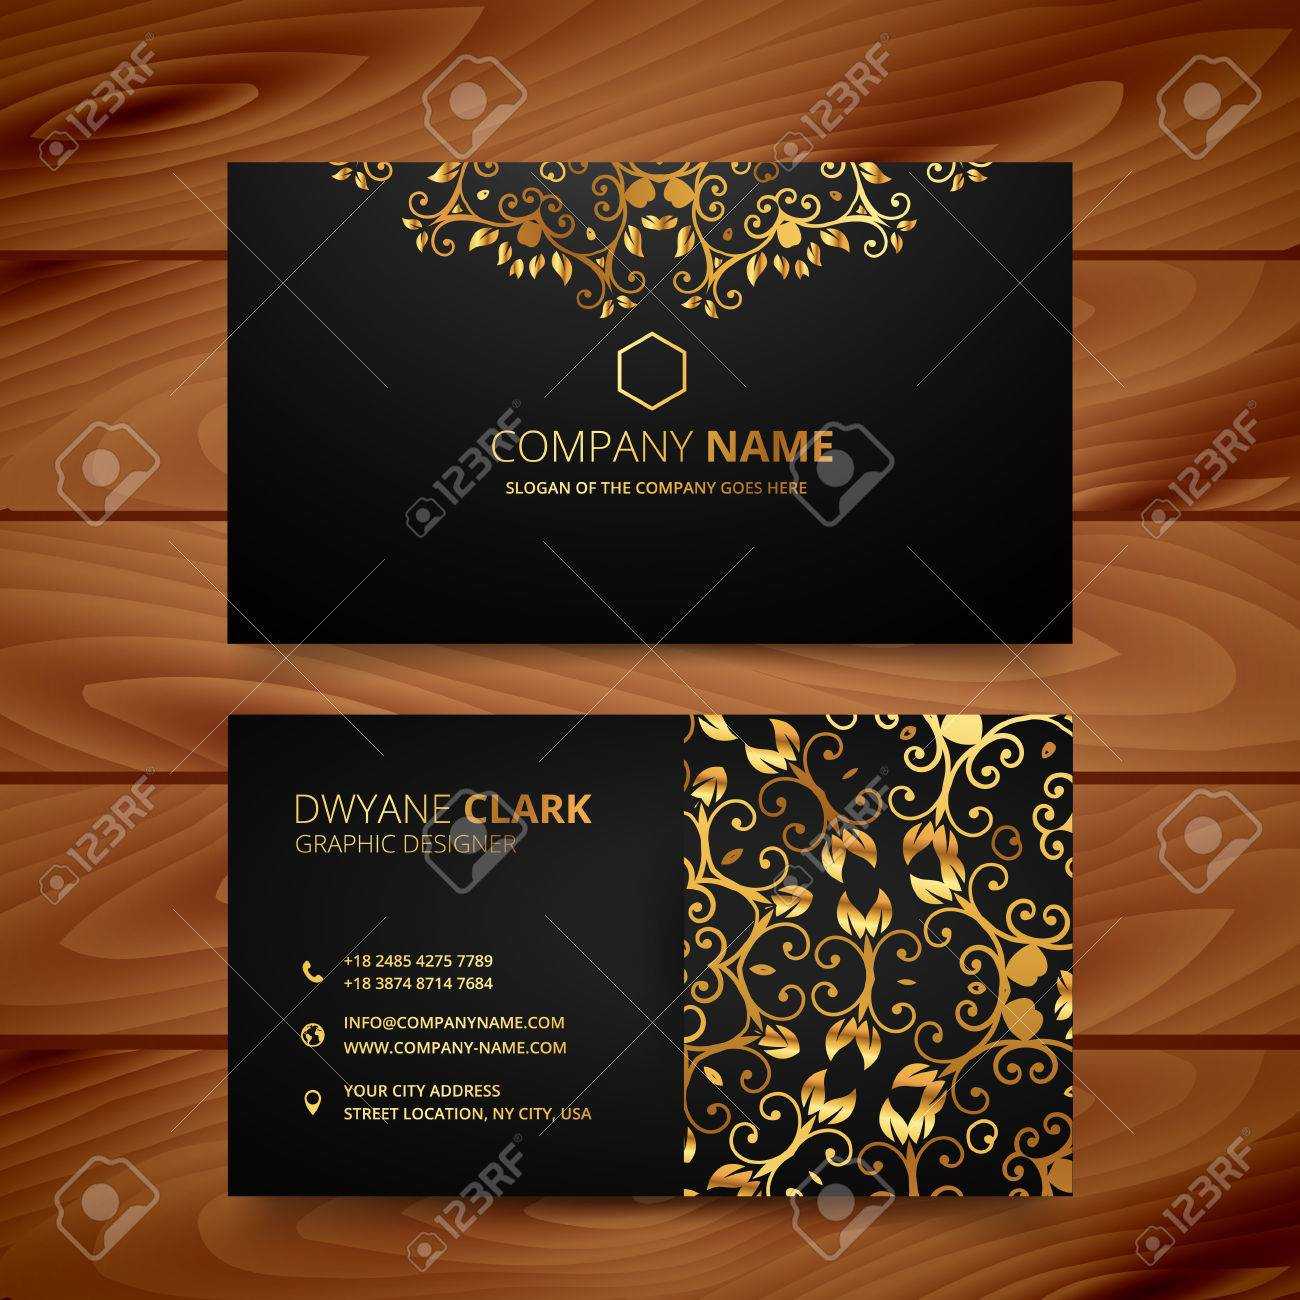 Stylish Golden Premium Luxury Business Card Template Design Royalty ...